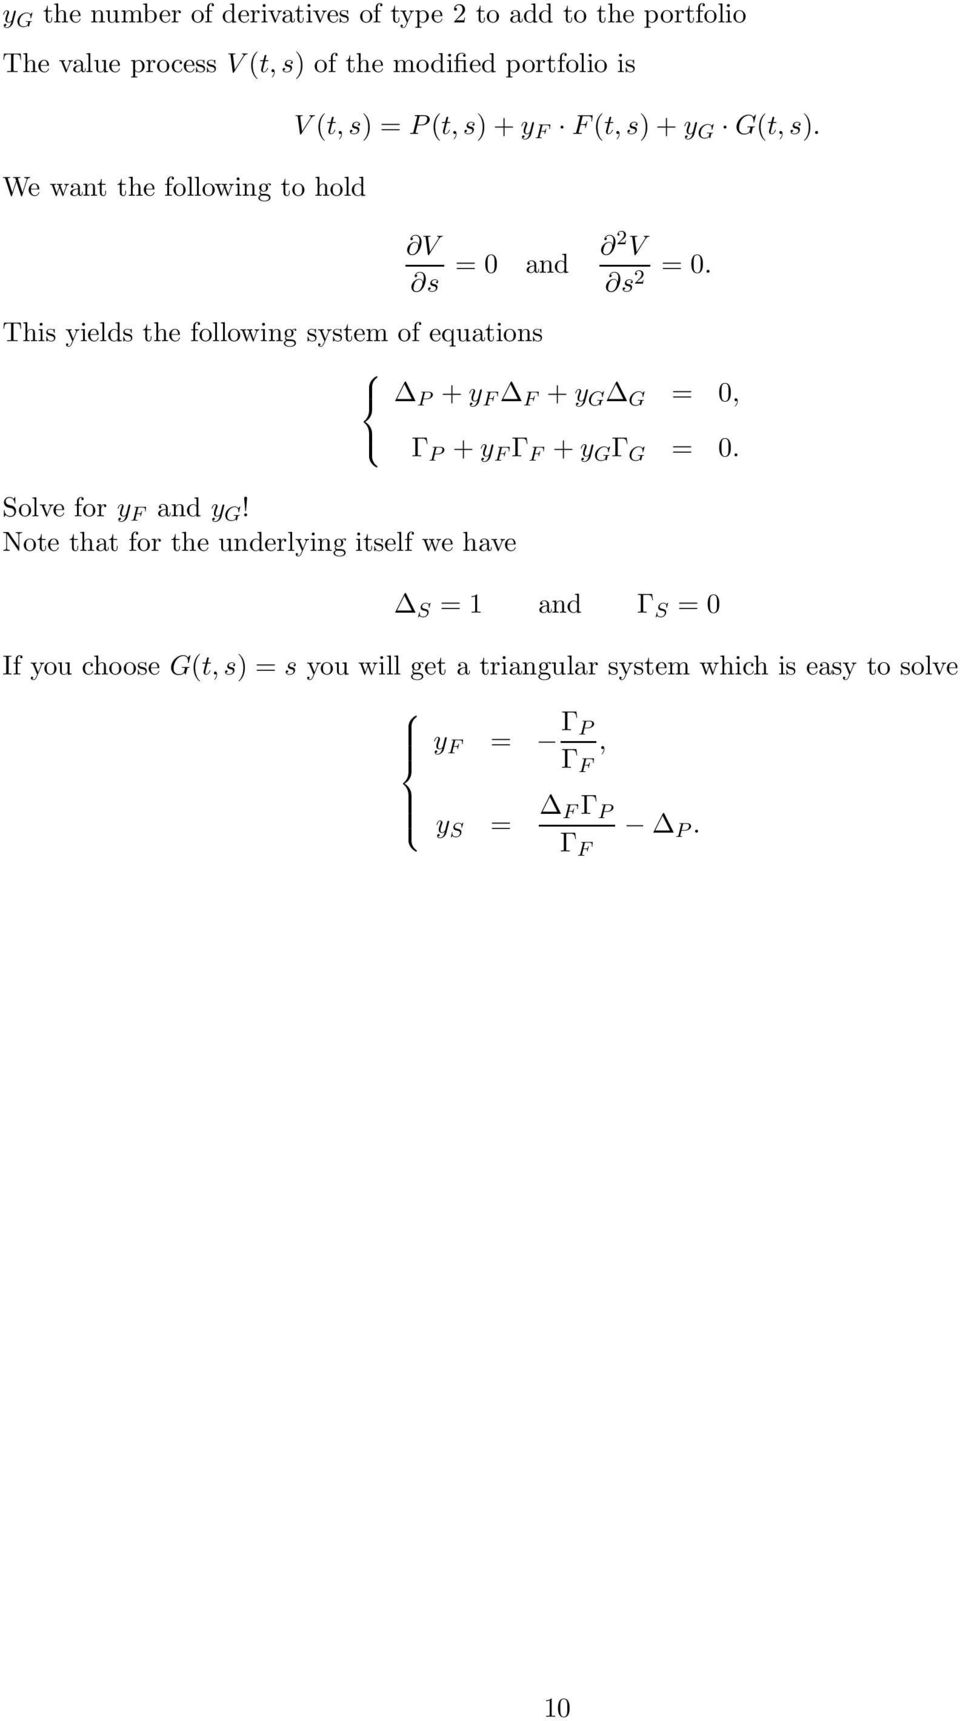 This yields the following system of equations P +y F F +y G G = 0, Solve for y F and y G!